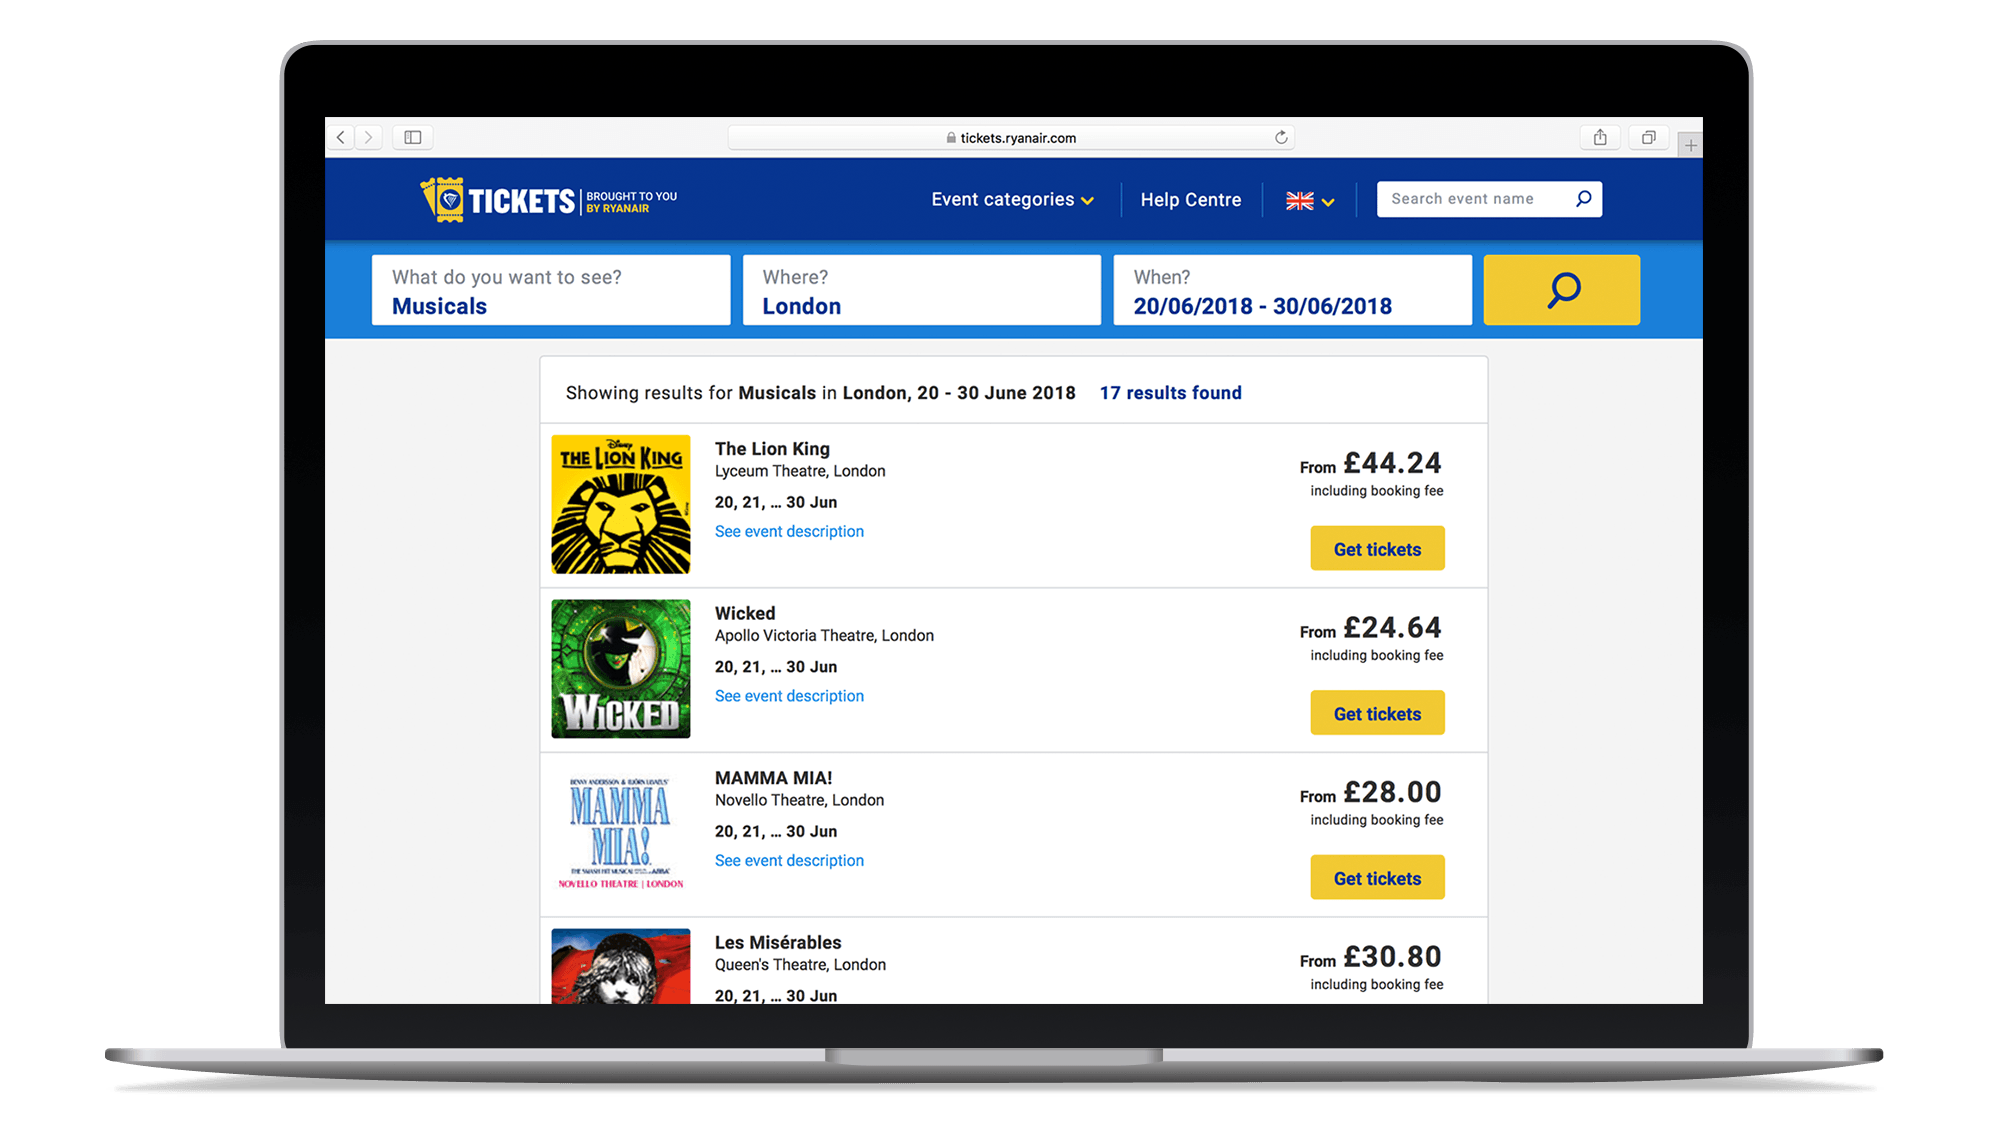 Laptop showing Ryanair Tickets' selection of live events in London between certain dates.